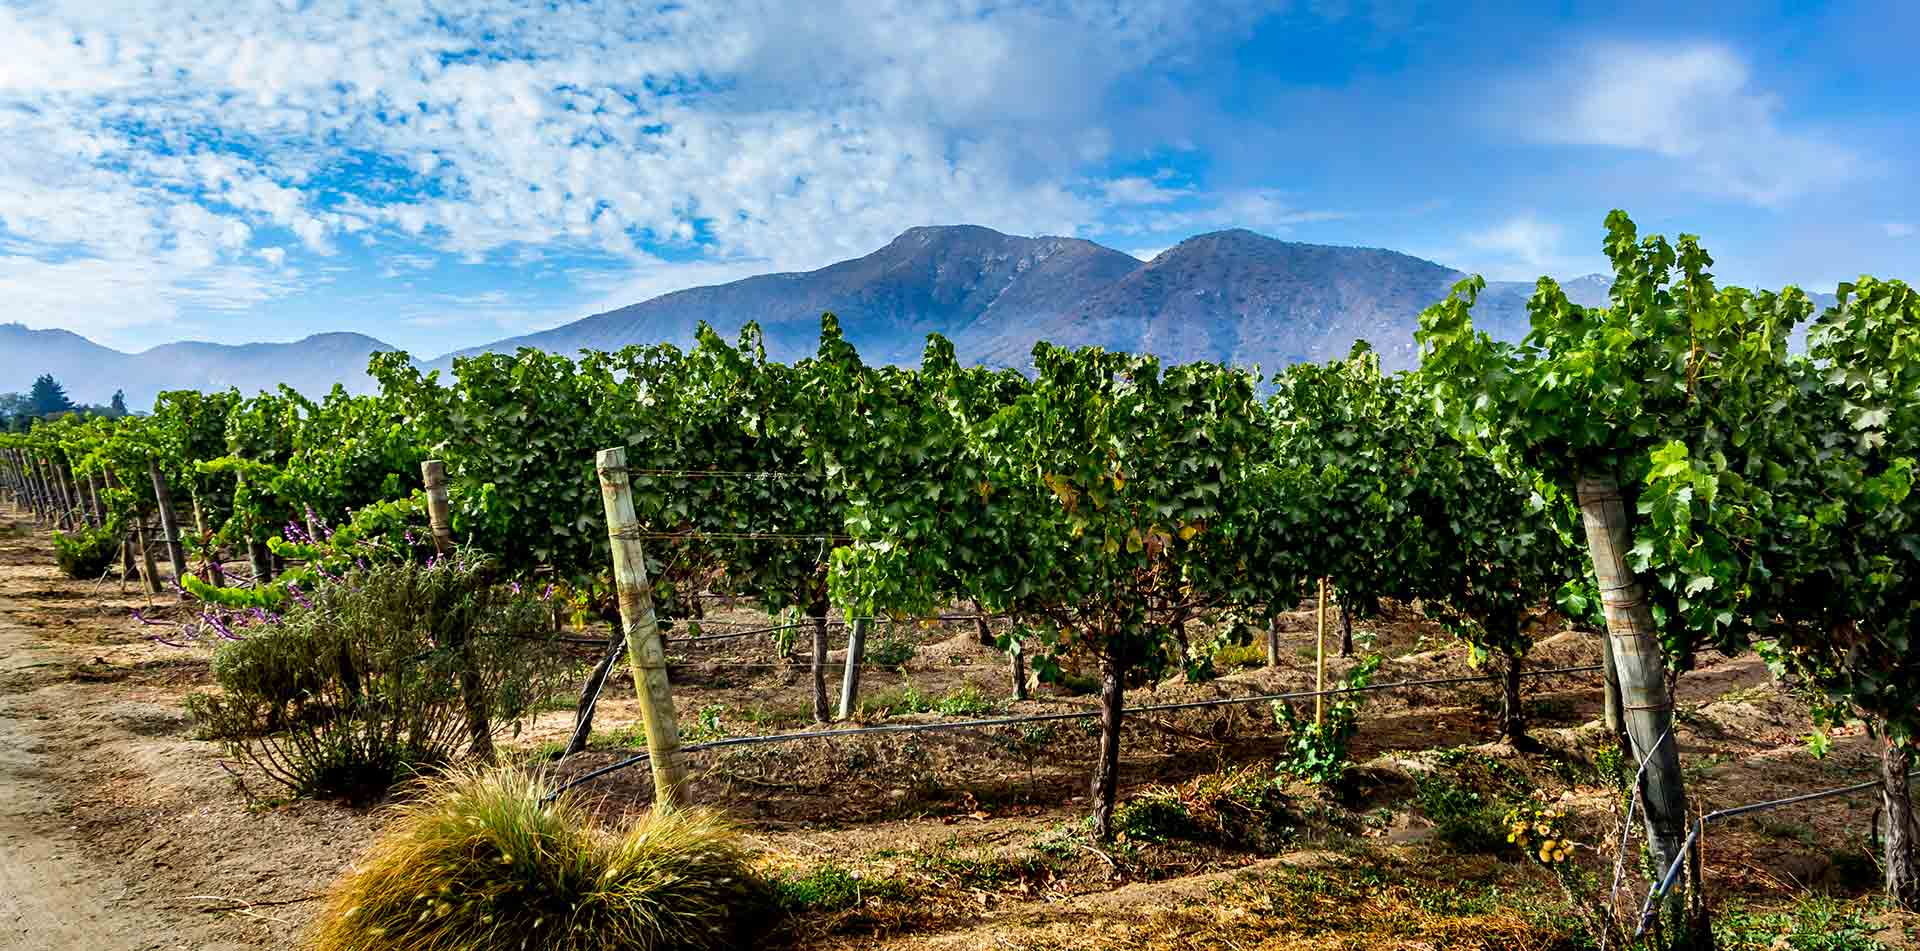 South America Chile Vineyard Landscape Casablanca Valley - luxury vacation destinations